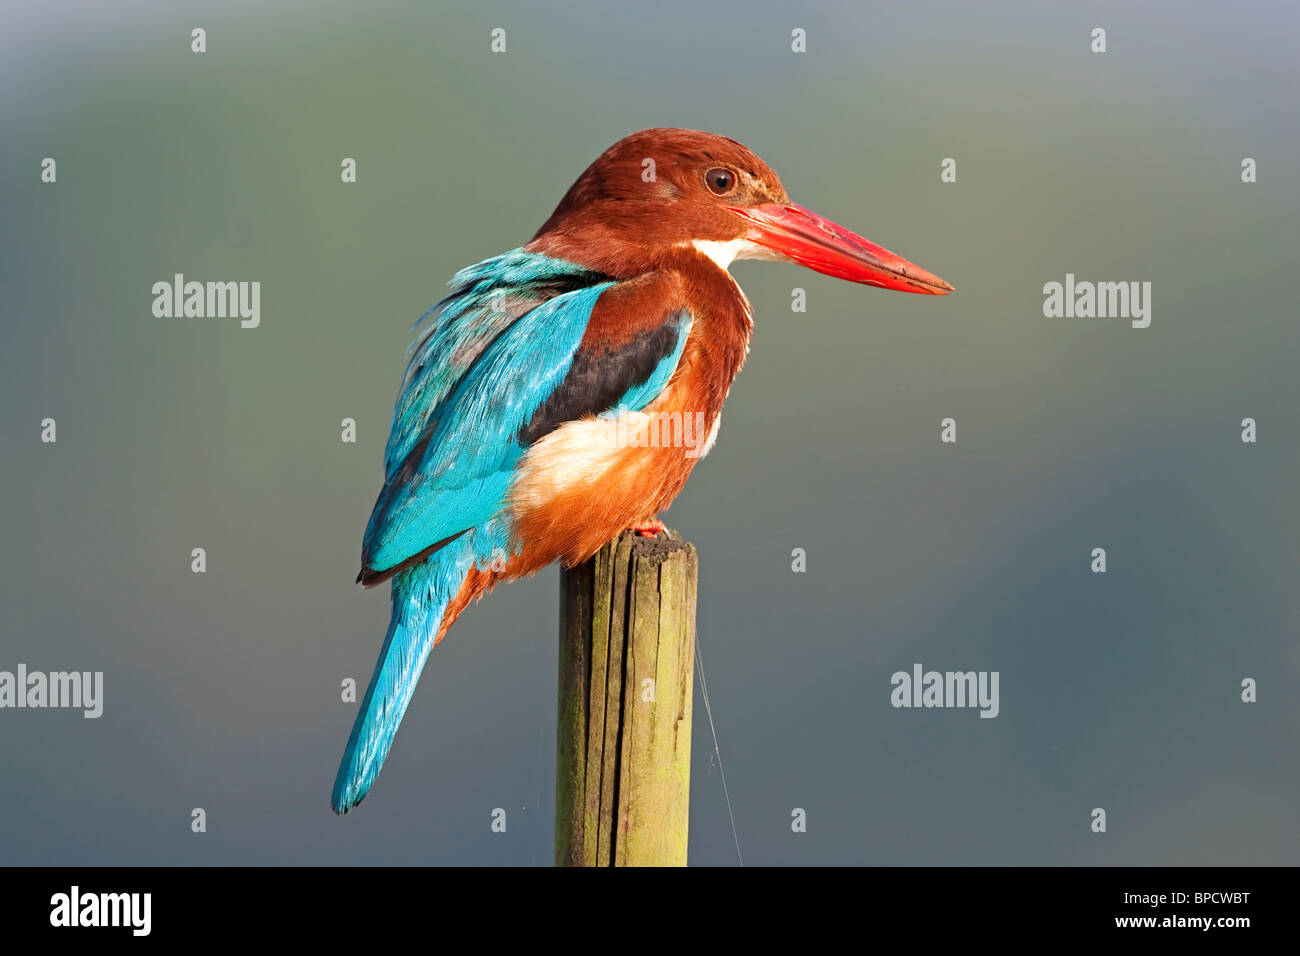 white-throated kingfisher (Halcyon smyrnensis) adult perched on stick, Goa, India, Asia - Stock Image